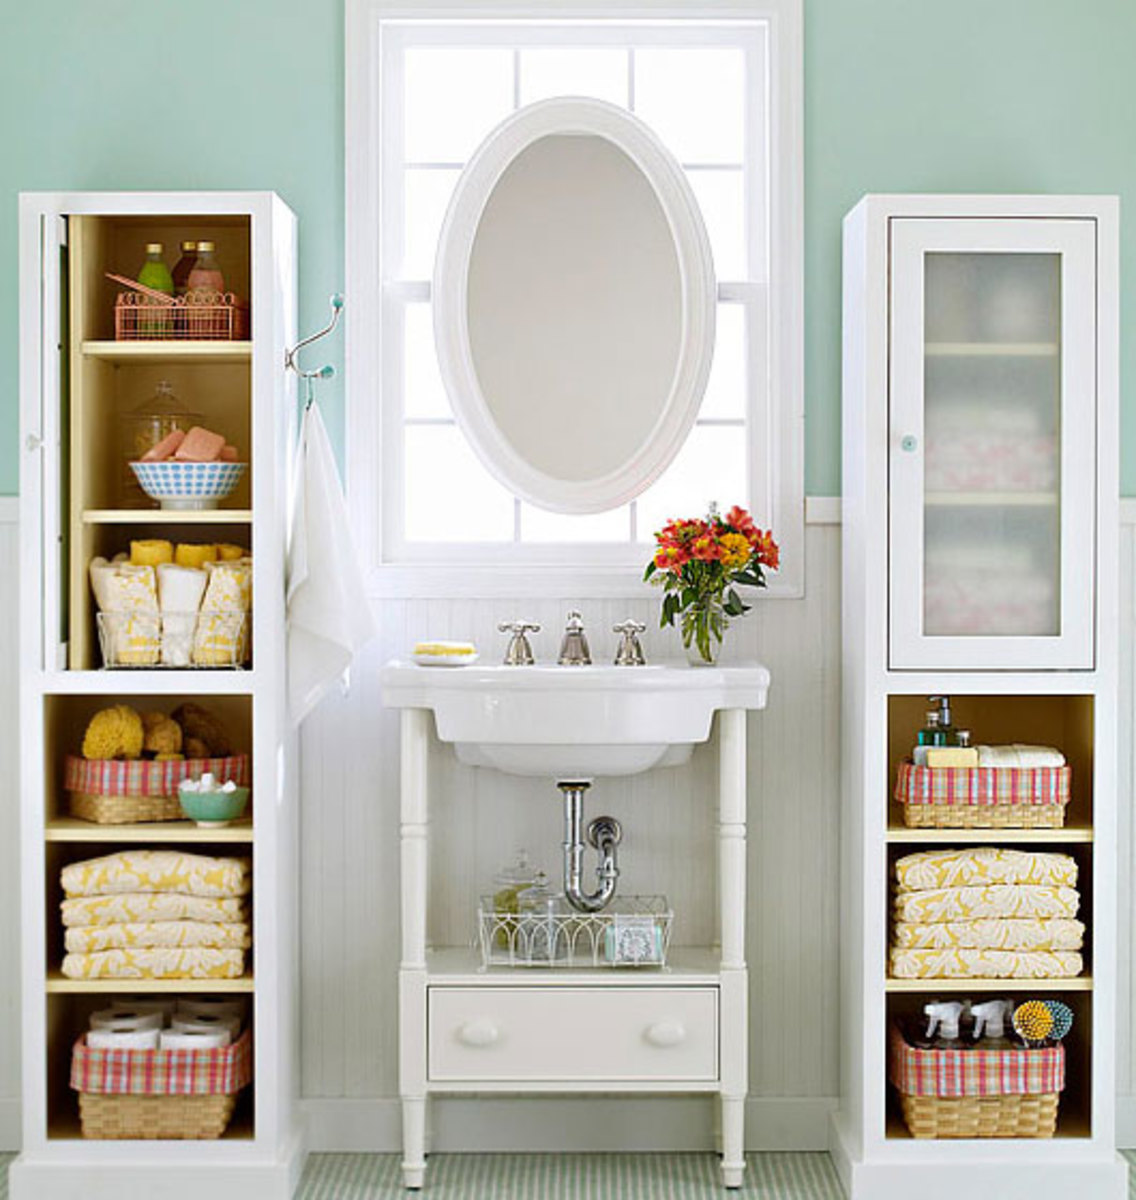 Bookcases for Toiletries | Click Pic for 42 DIY Bathroom Organization Ideas